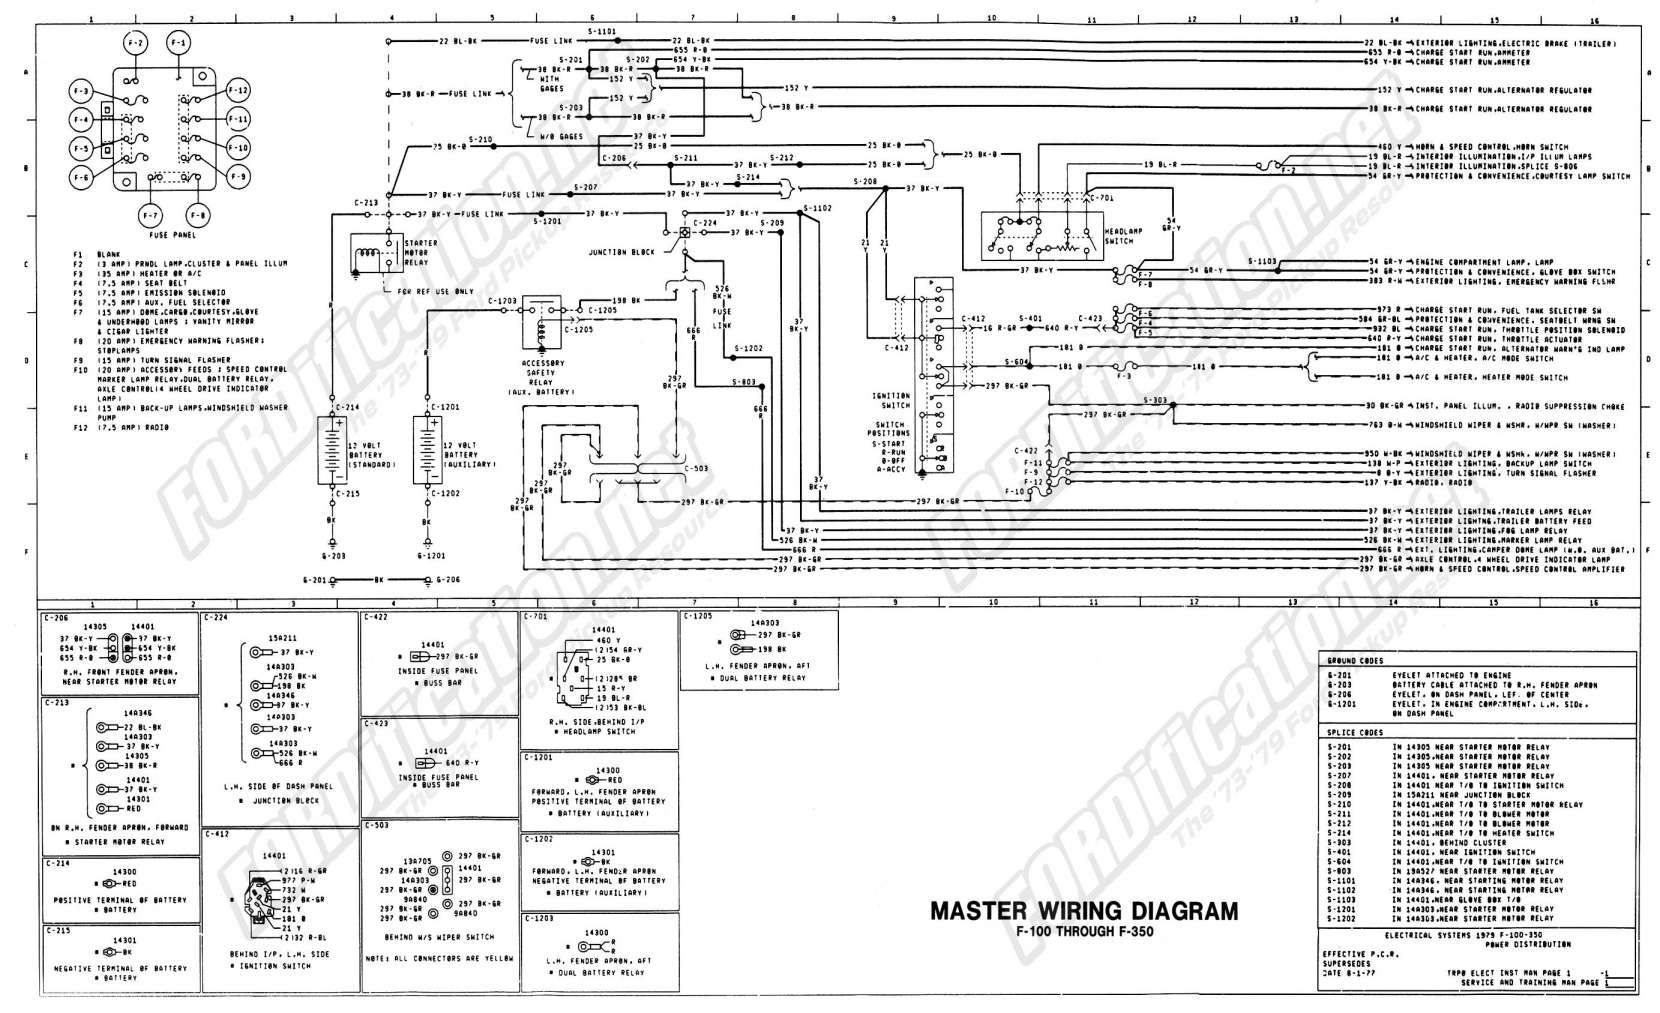 sterling tractor fuse box 12 2003 sterling truck wiring diagram truck diagram sterling  12 2003 sterling truck wiring diagram